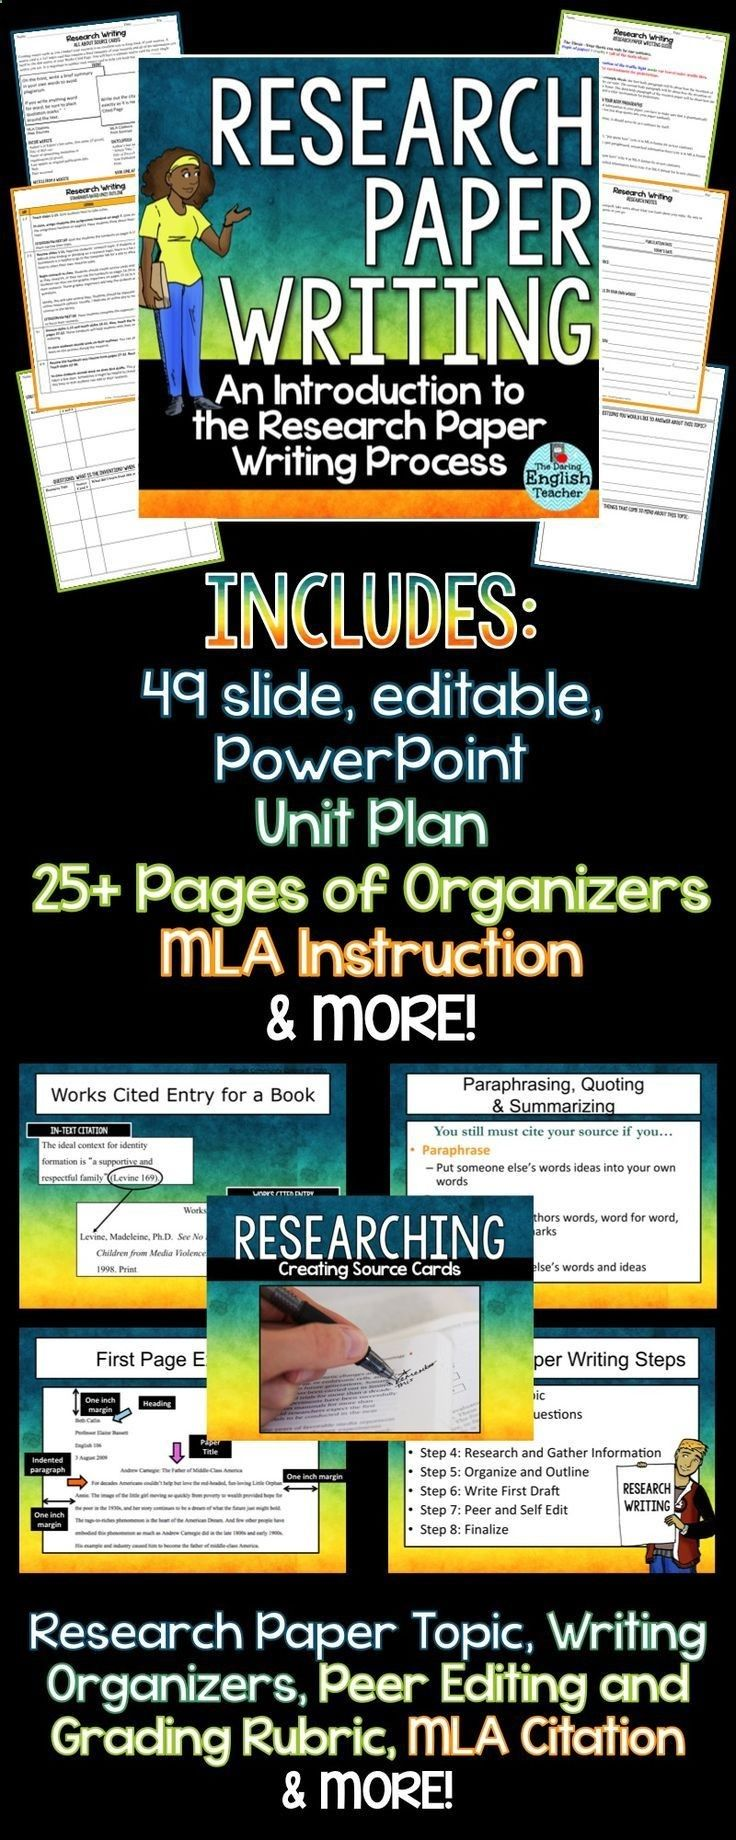 quoting research paper Students often use too many direct quotations when they take notes, resulting in too many of them in the final research paper in fact, probably only about 10% of the final copy should consist of directly quoted material.